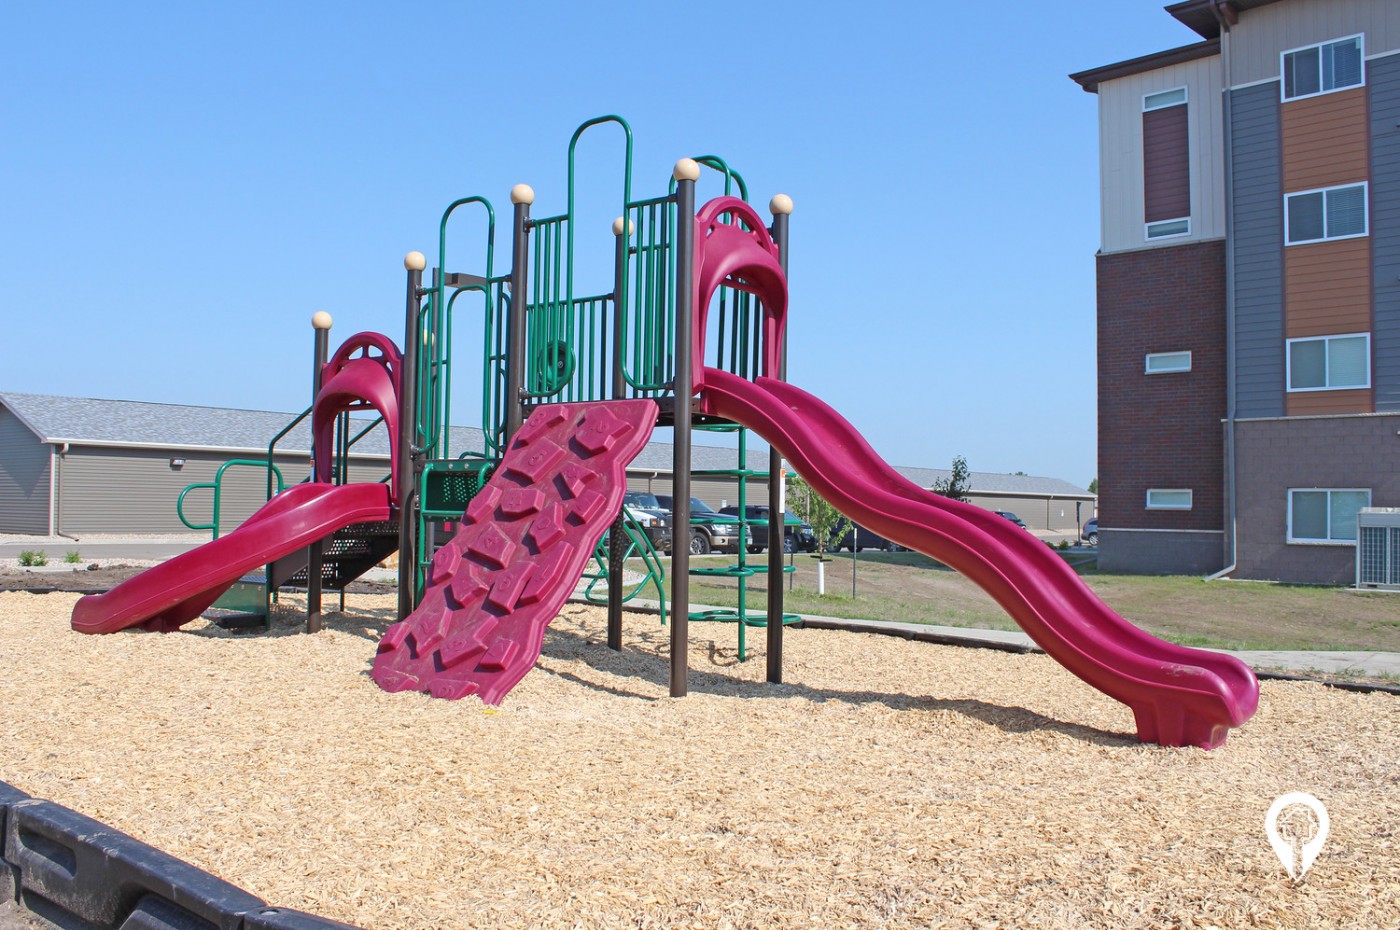 Commons-Landing-at-Southgate-Time-Run-Around-Have-Some-Fun-at-Playground